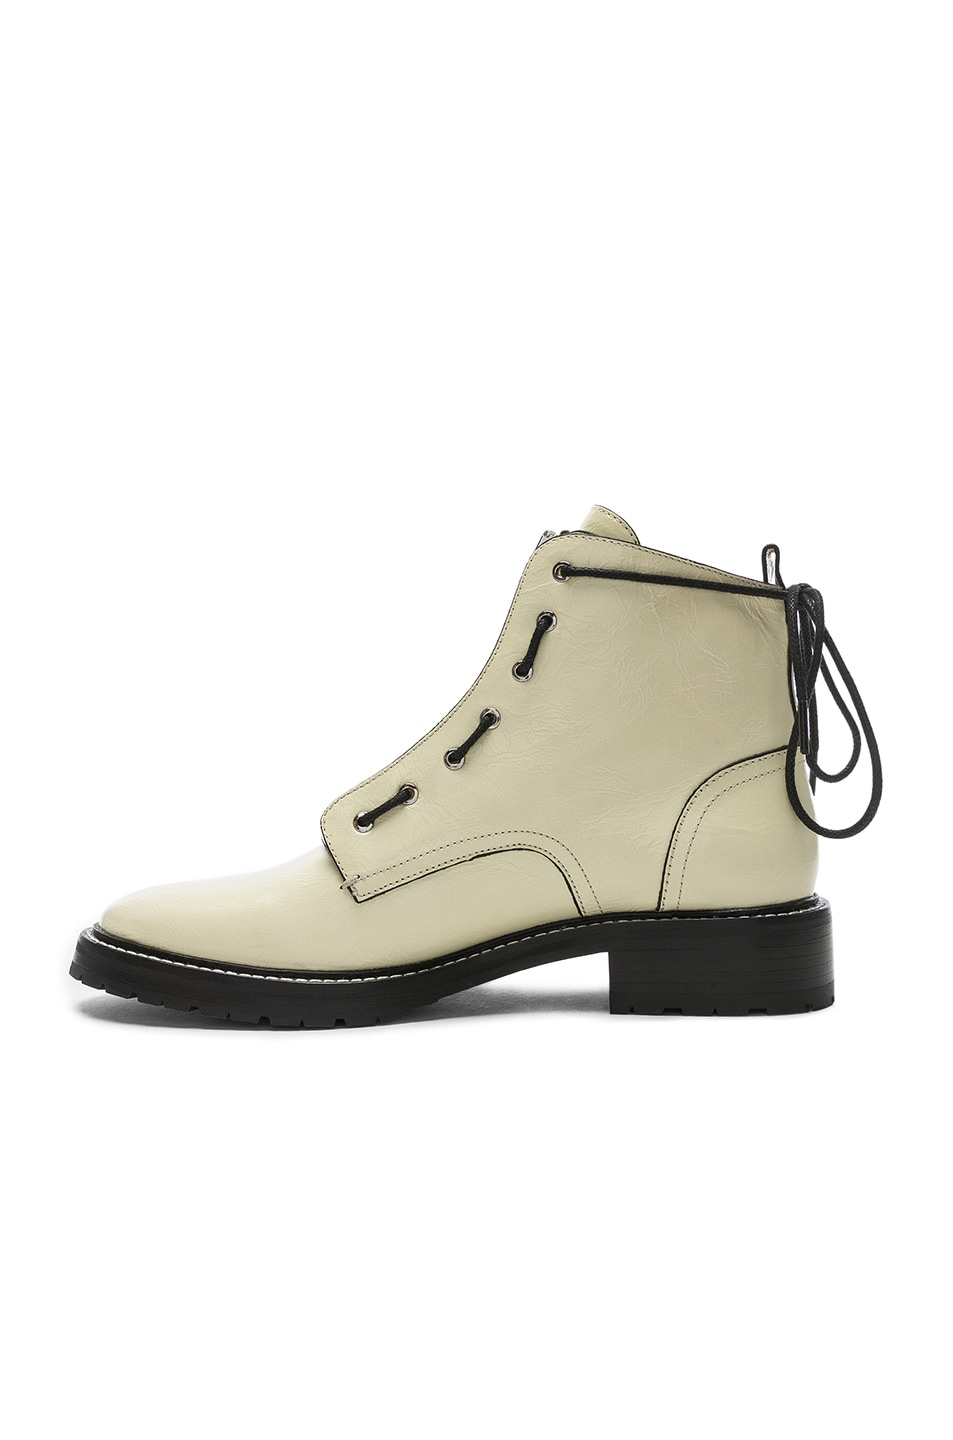 Image 5 of Rag & Bone Leather Cannon Boots in White